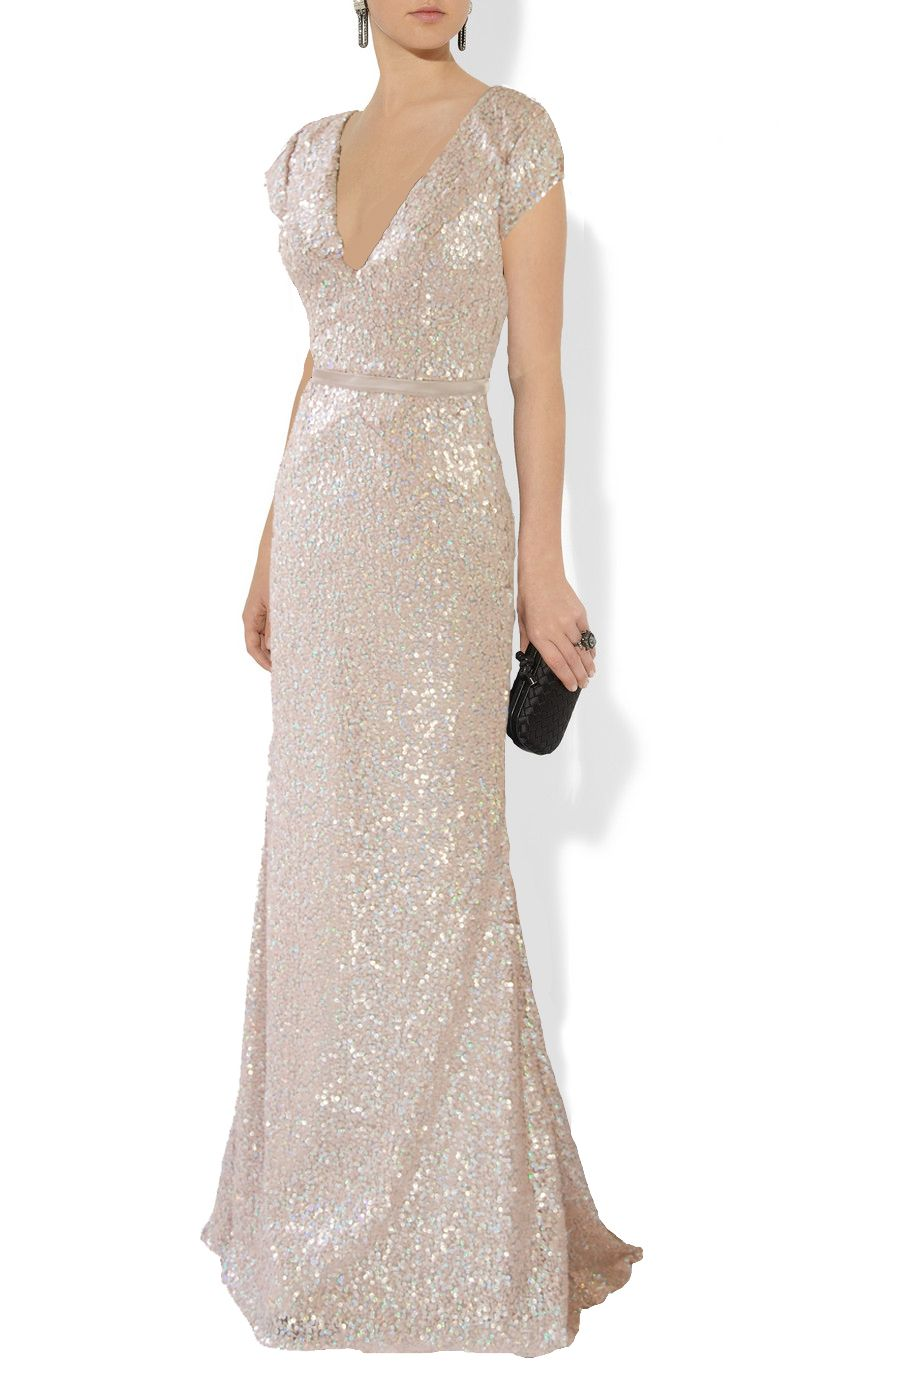 Full Length Sparkly Dress Review 2017 Always Fashion